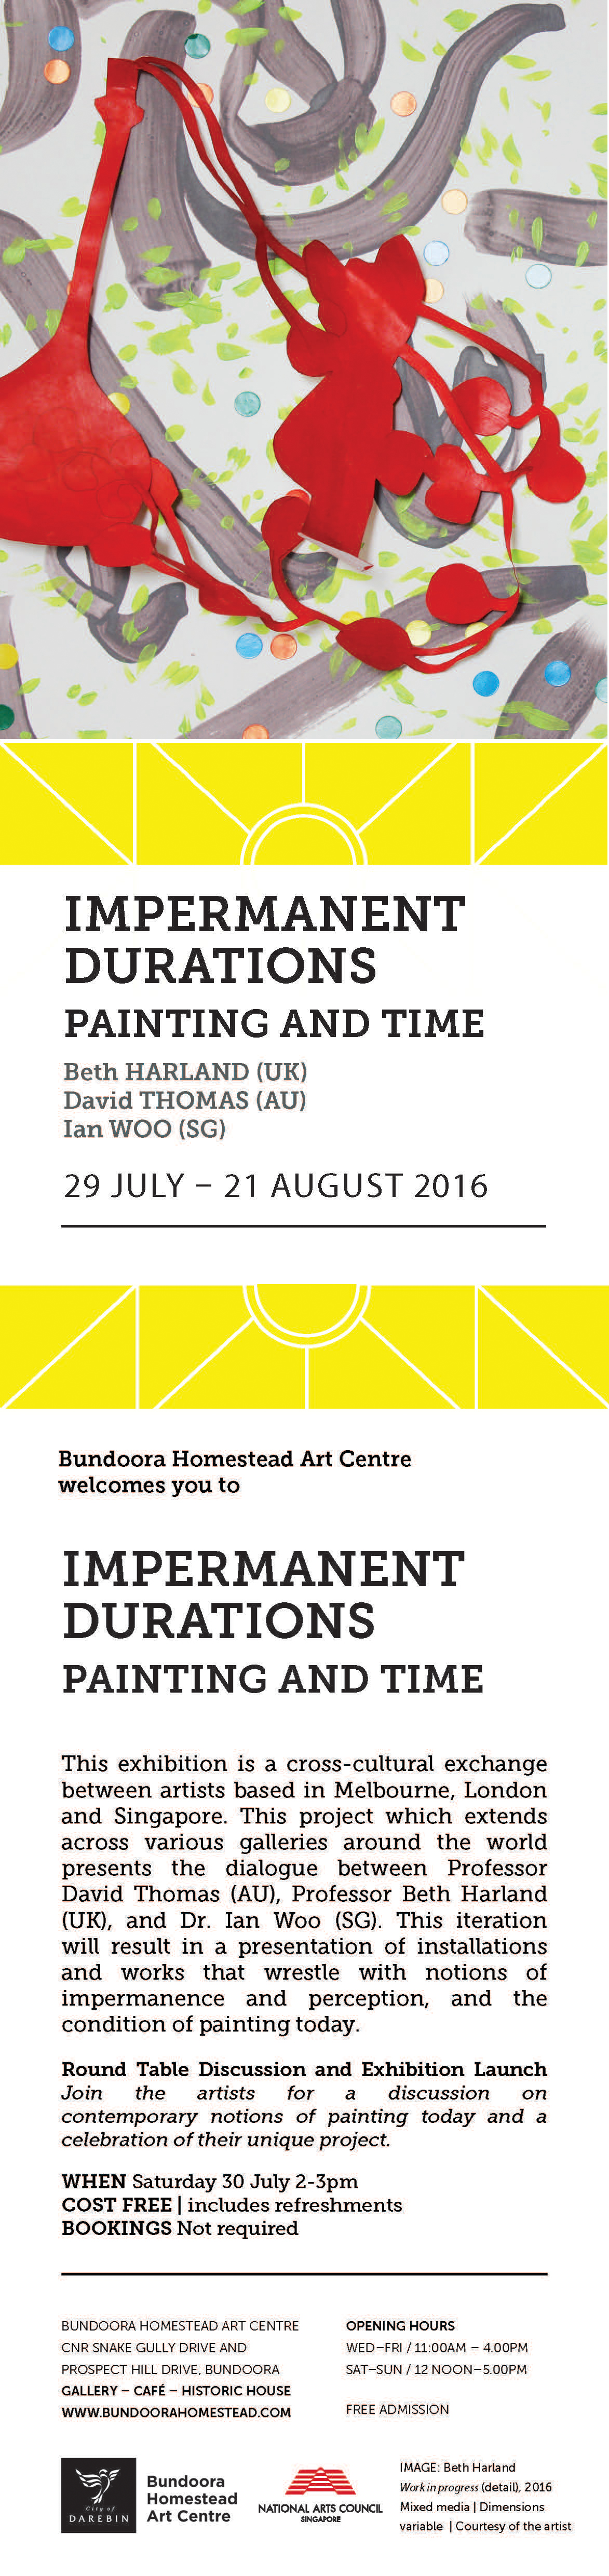 Bundoora Homestead Invite